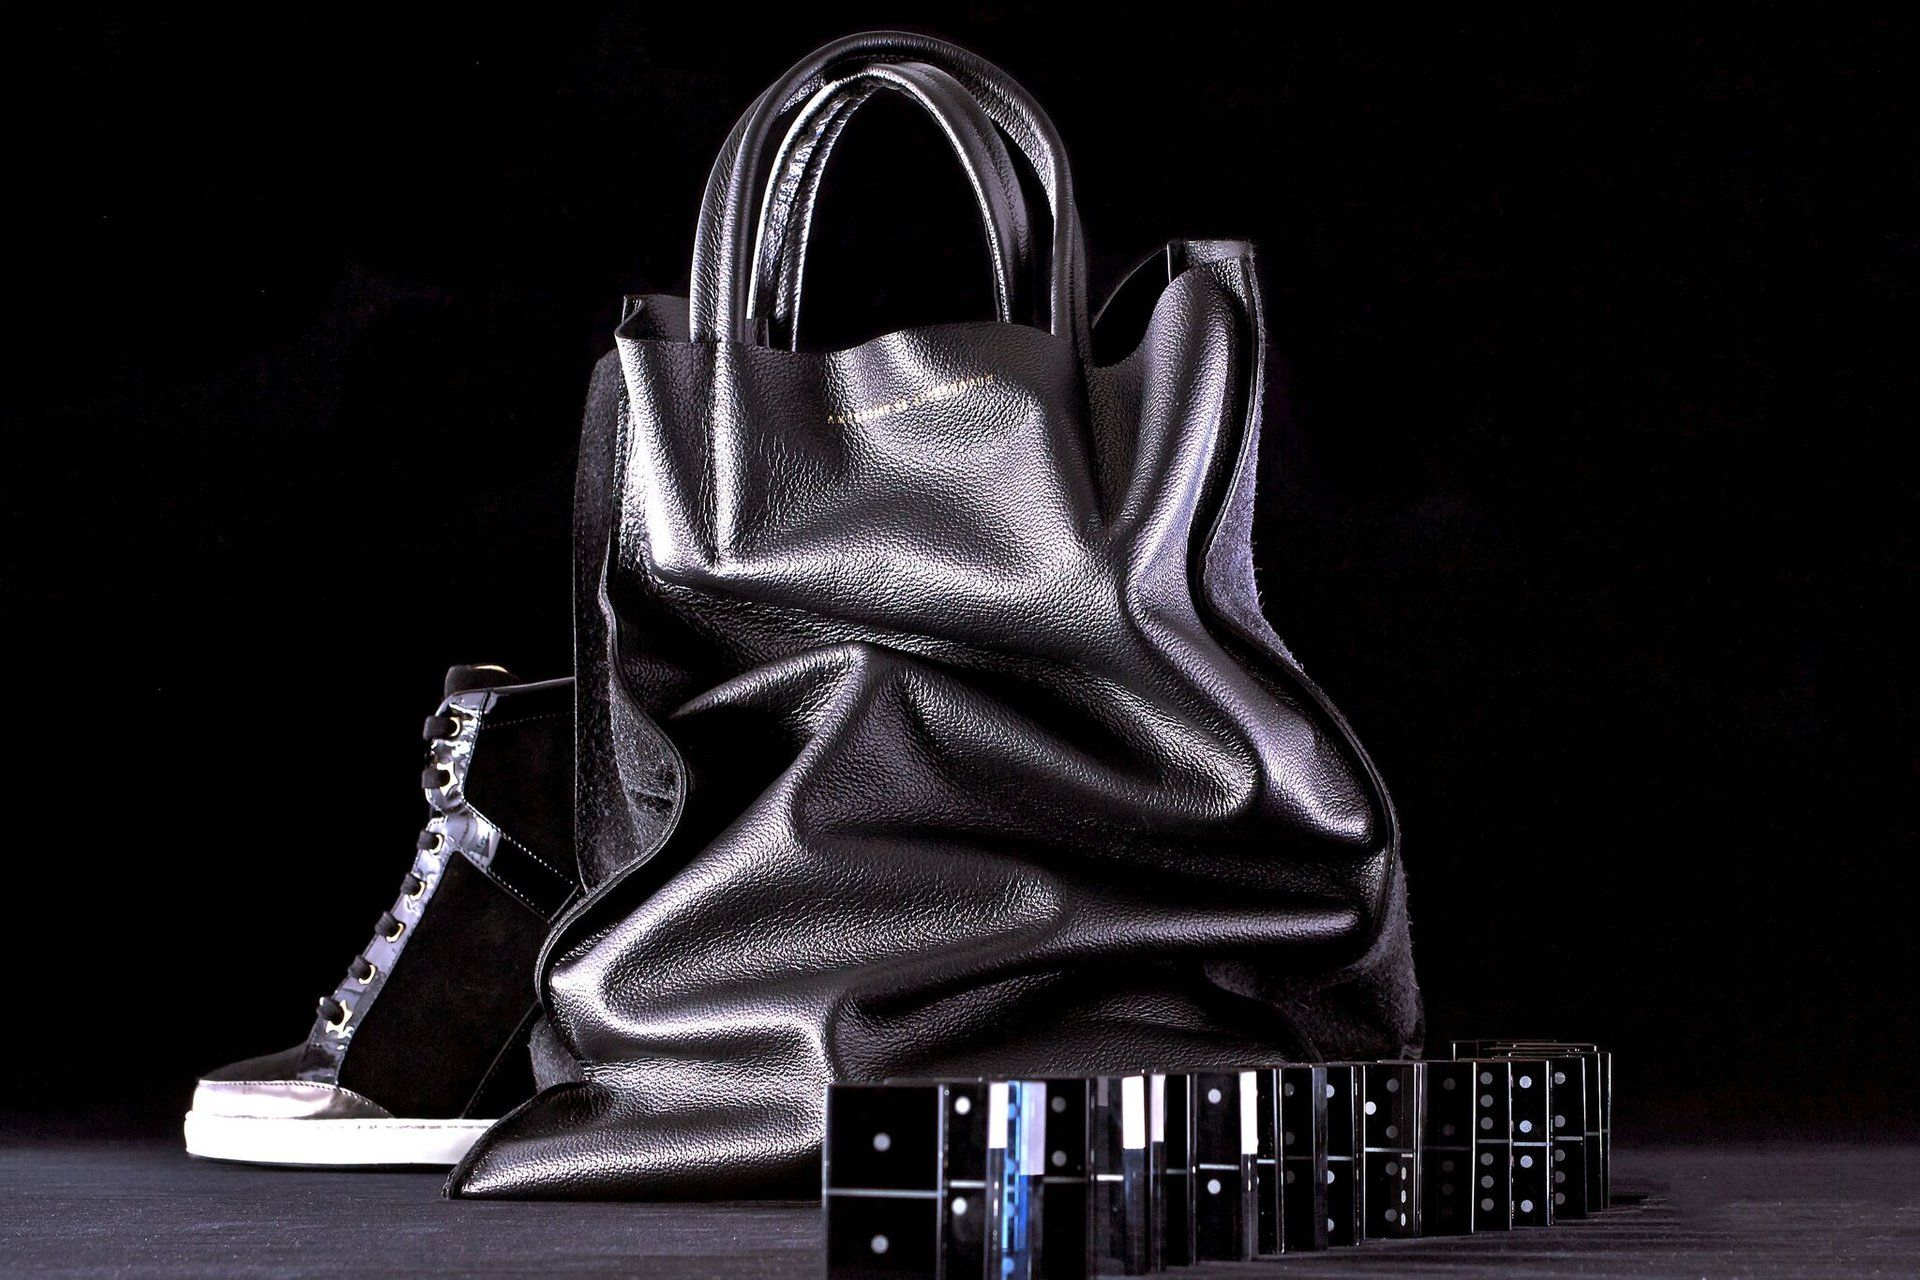 Shiny black leather bag and dominos